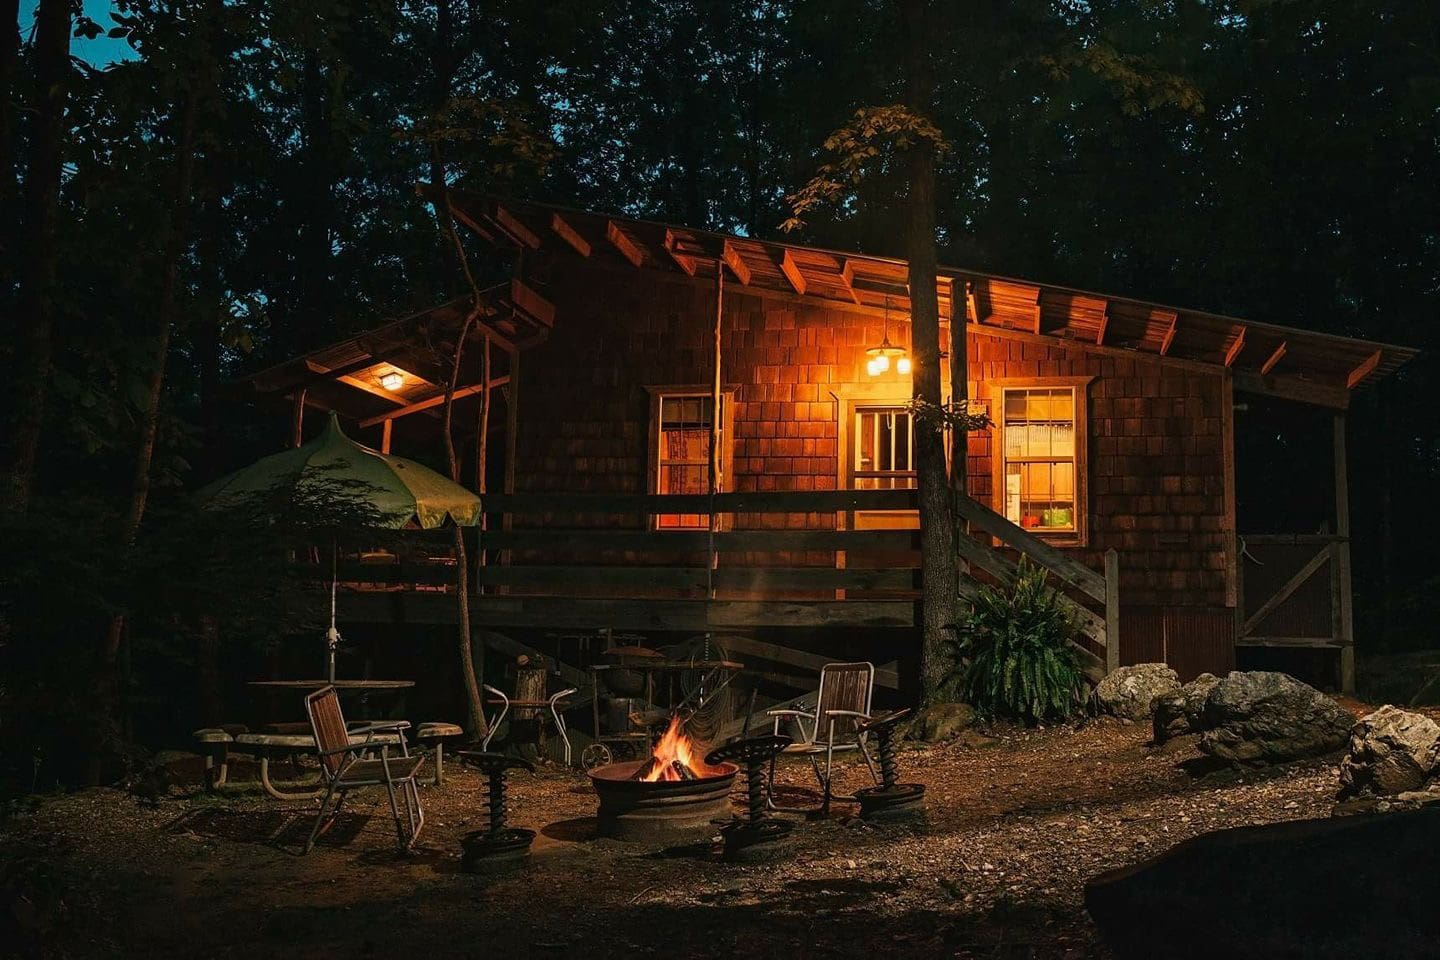 Oak Ridge Cabin with fire pit. S'mores are a must!